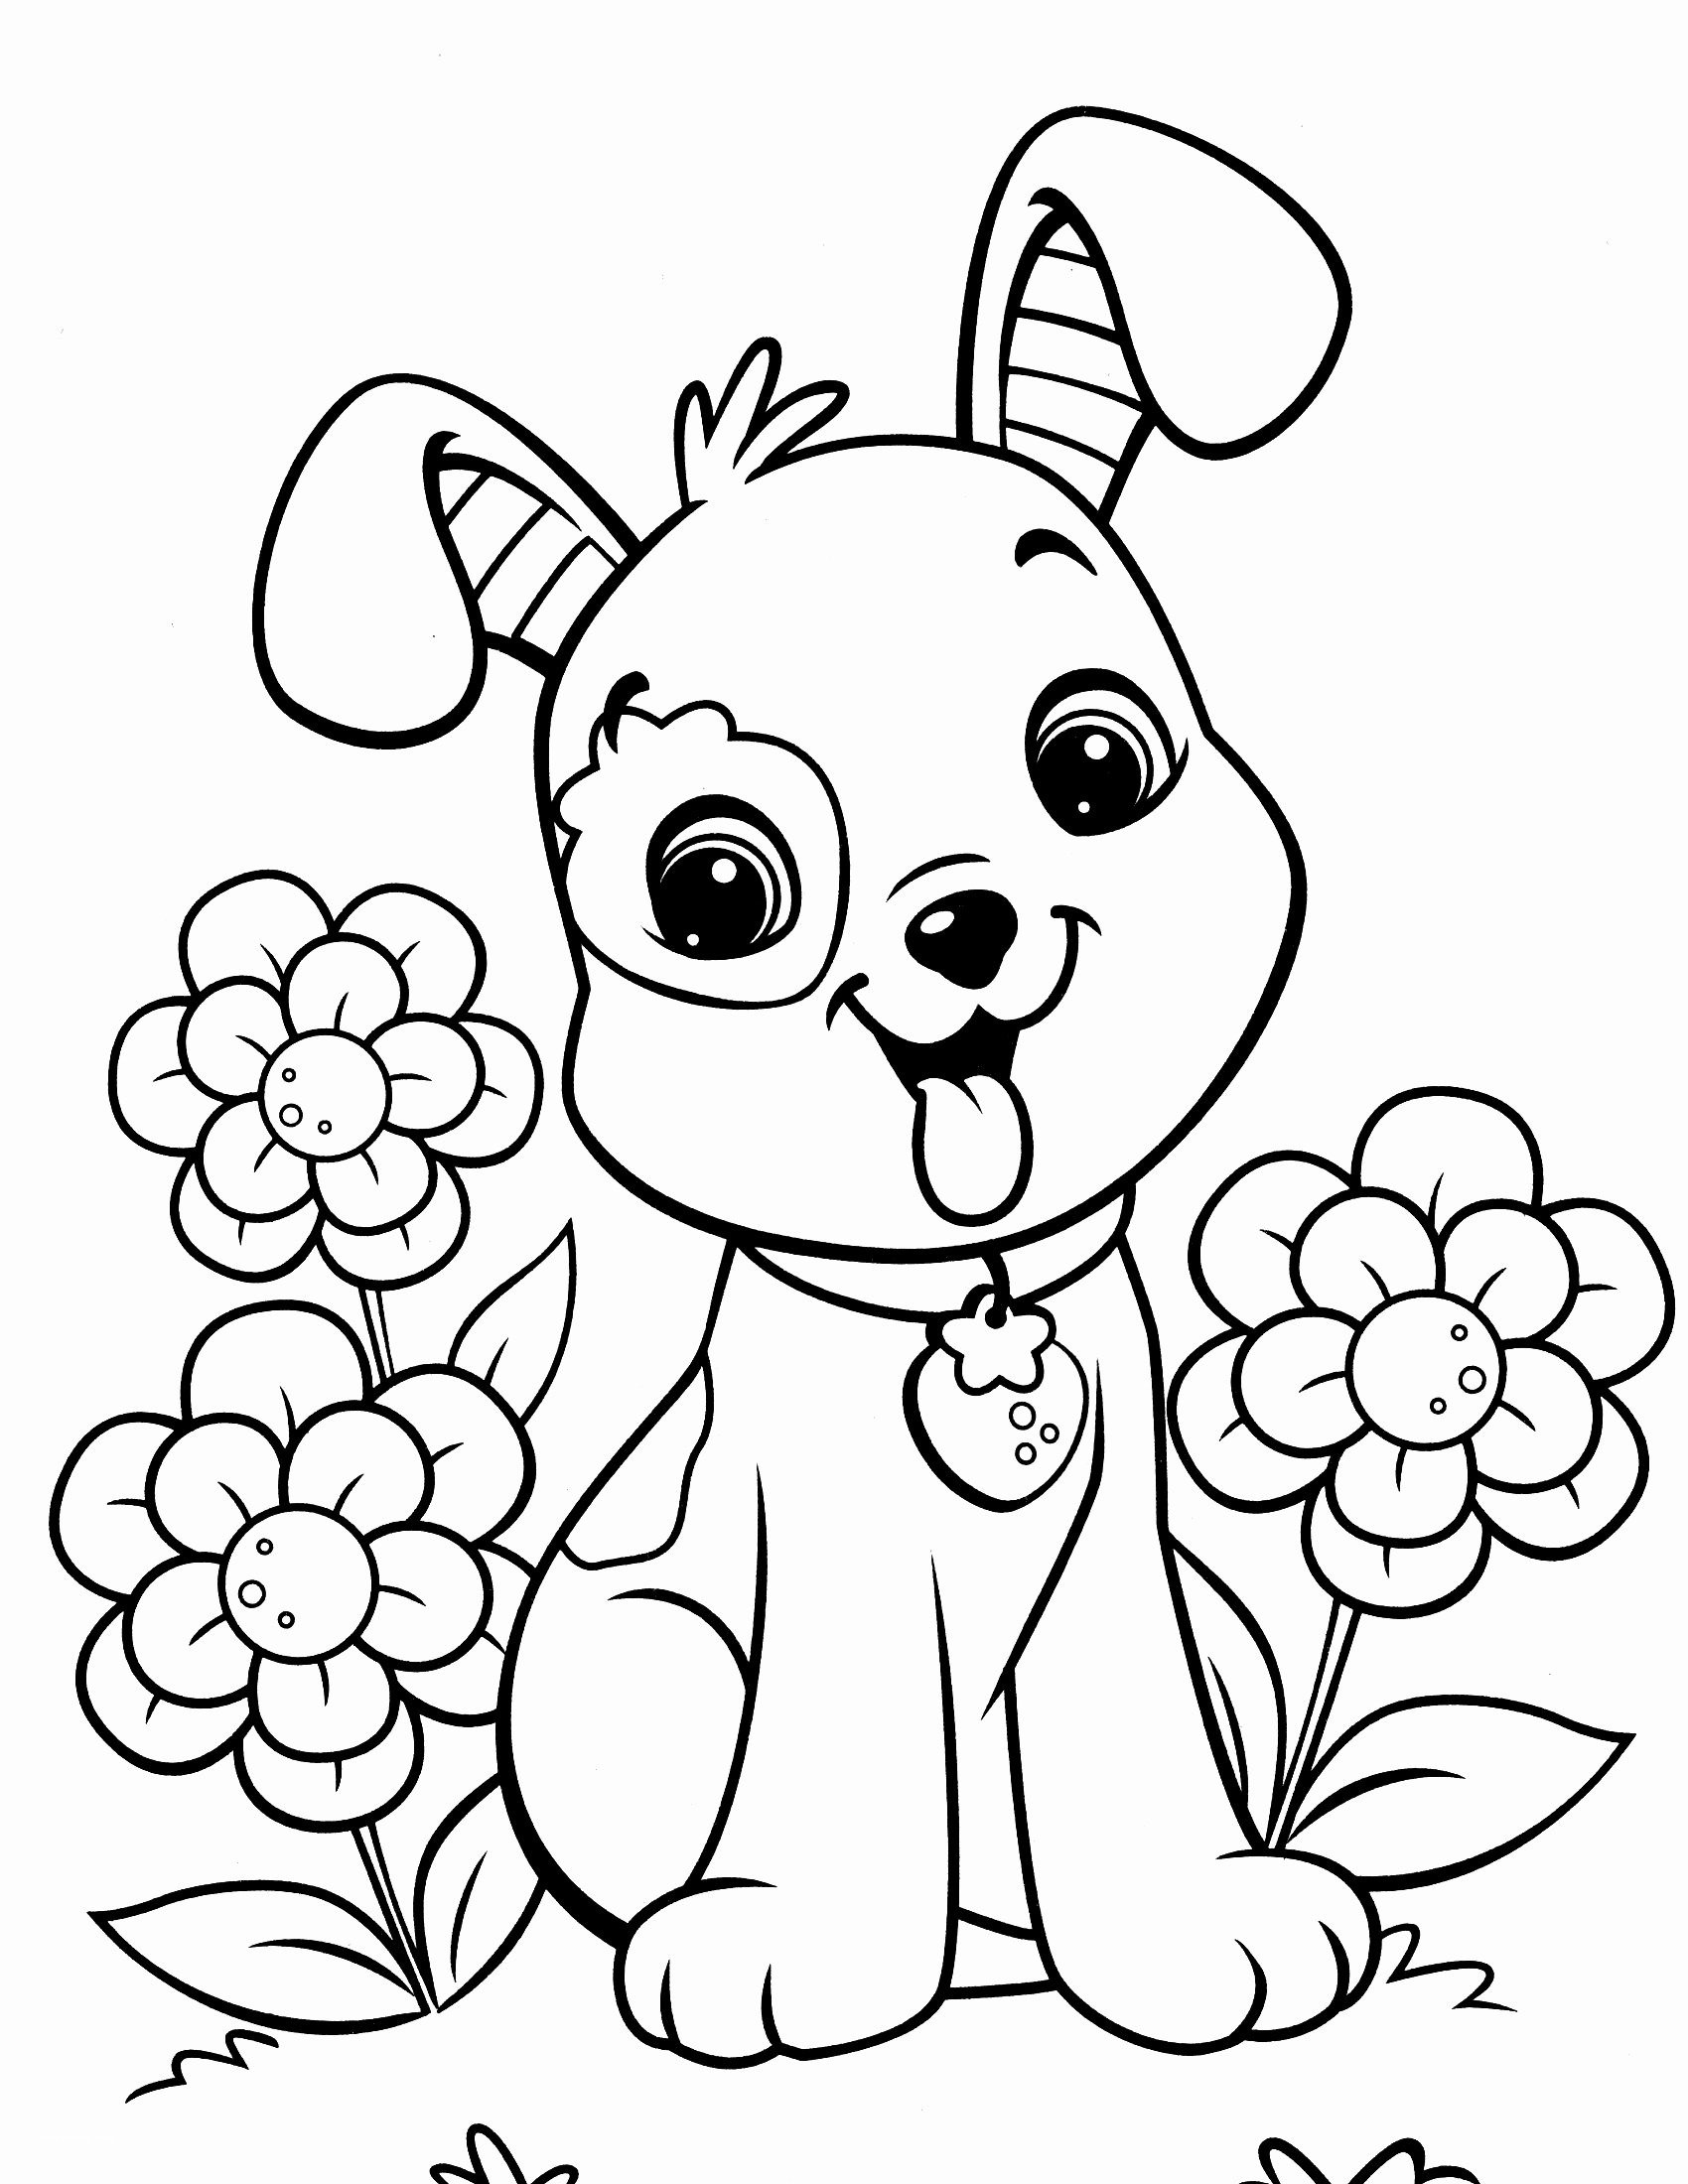 Australian Outback Coloring Pages Free Printable Sheets For Toddlers  Beautiful Dog Colouring Elegant Puppy Pals Of – Dialogueeurope